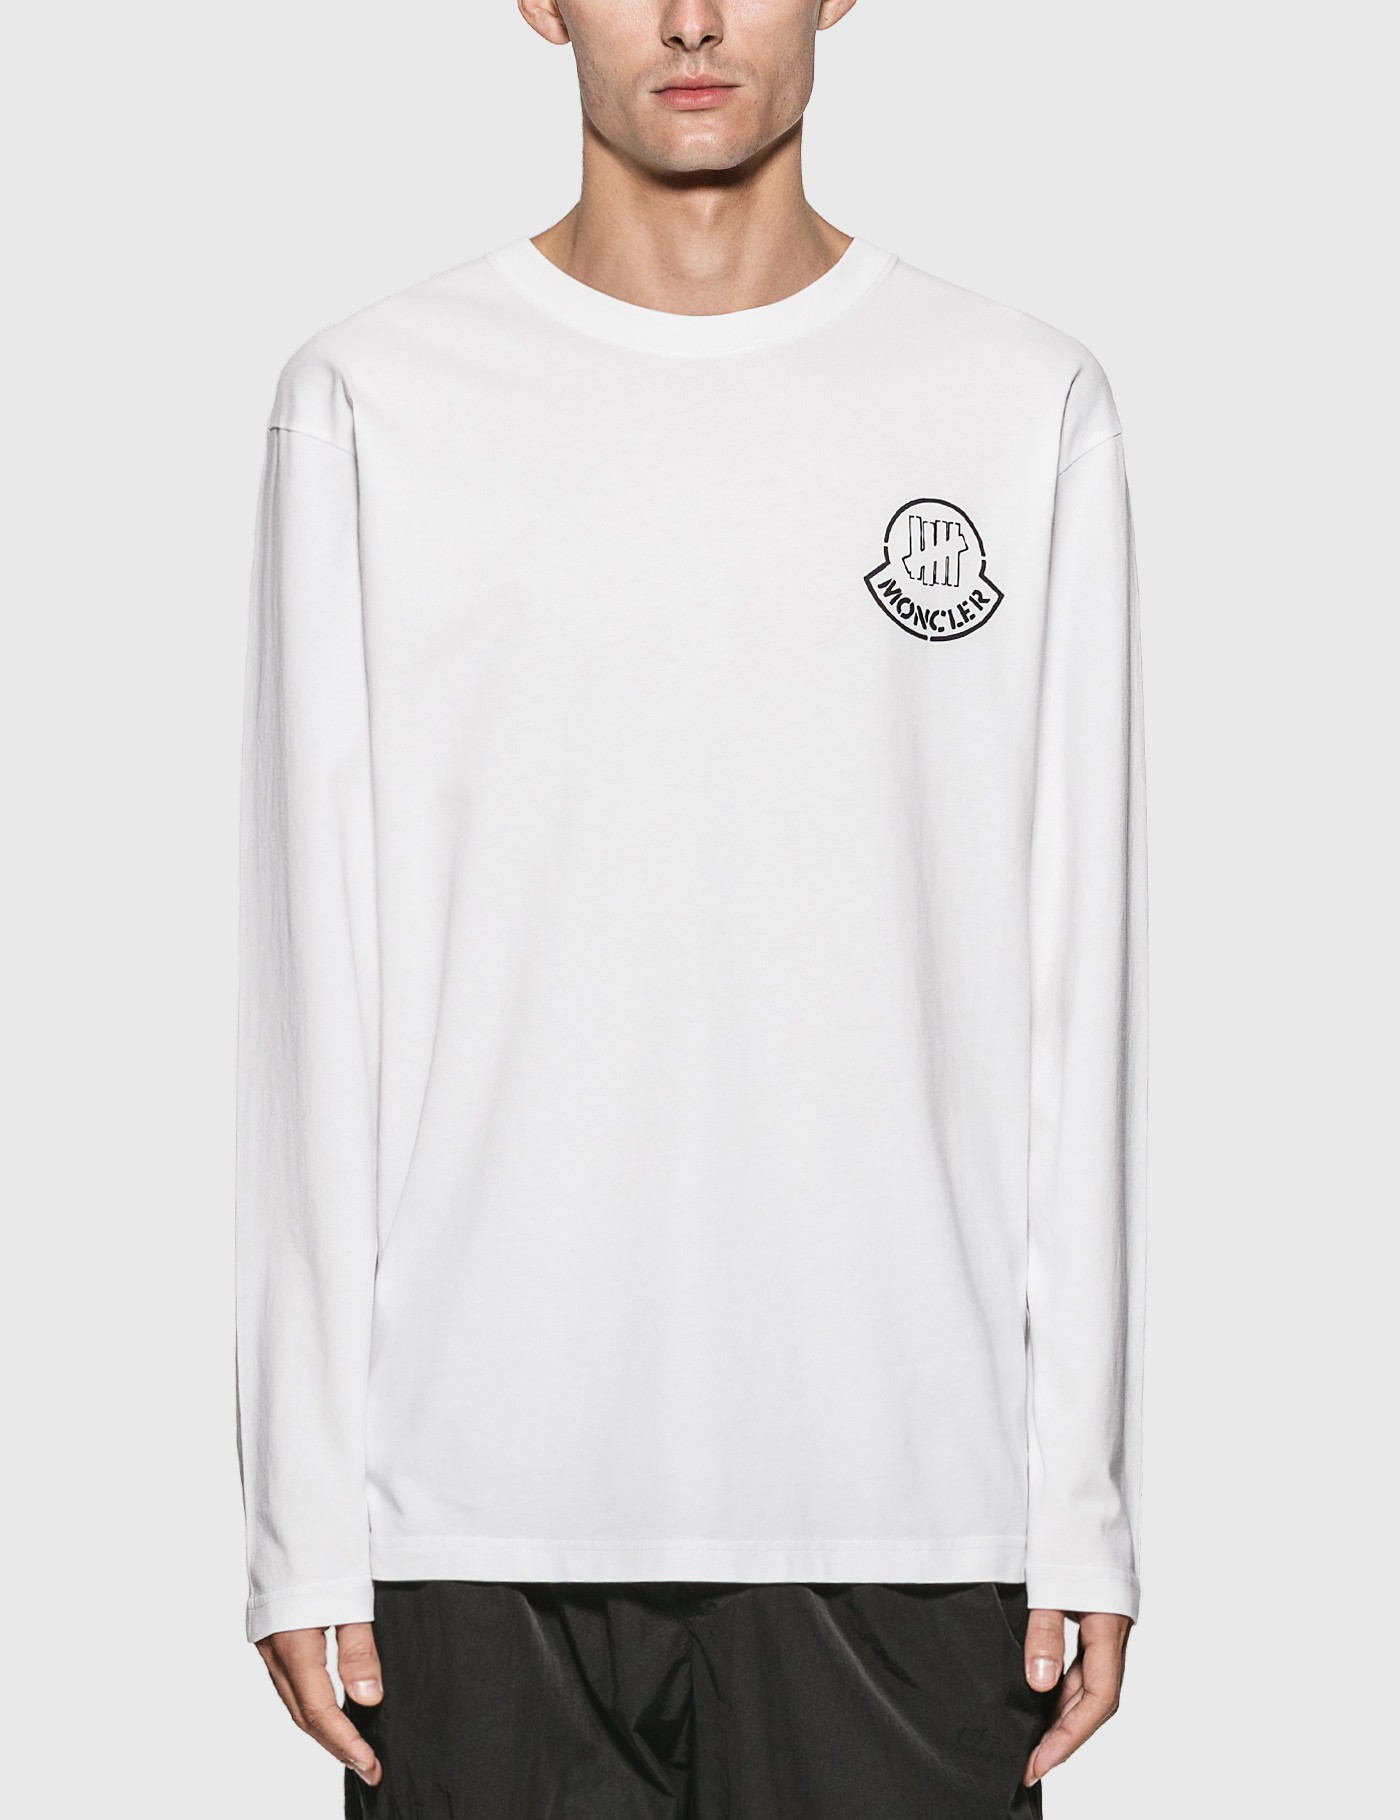 Moncler Genius 1952 X UNDEFEATED LOGO LONG SLEEVE T-SHIRT